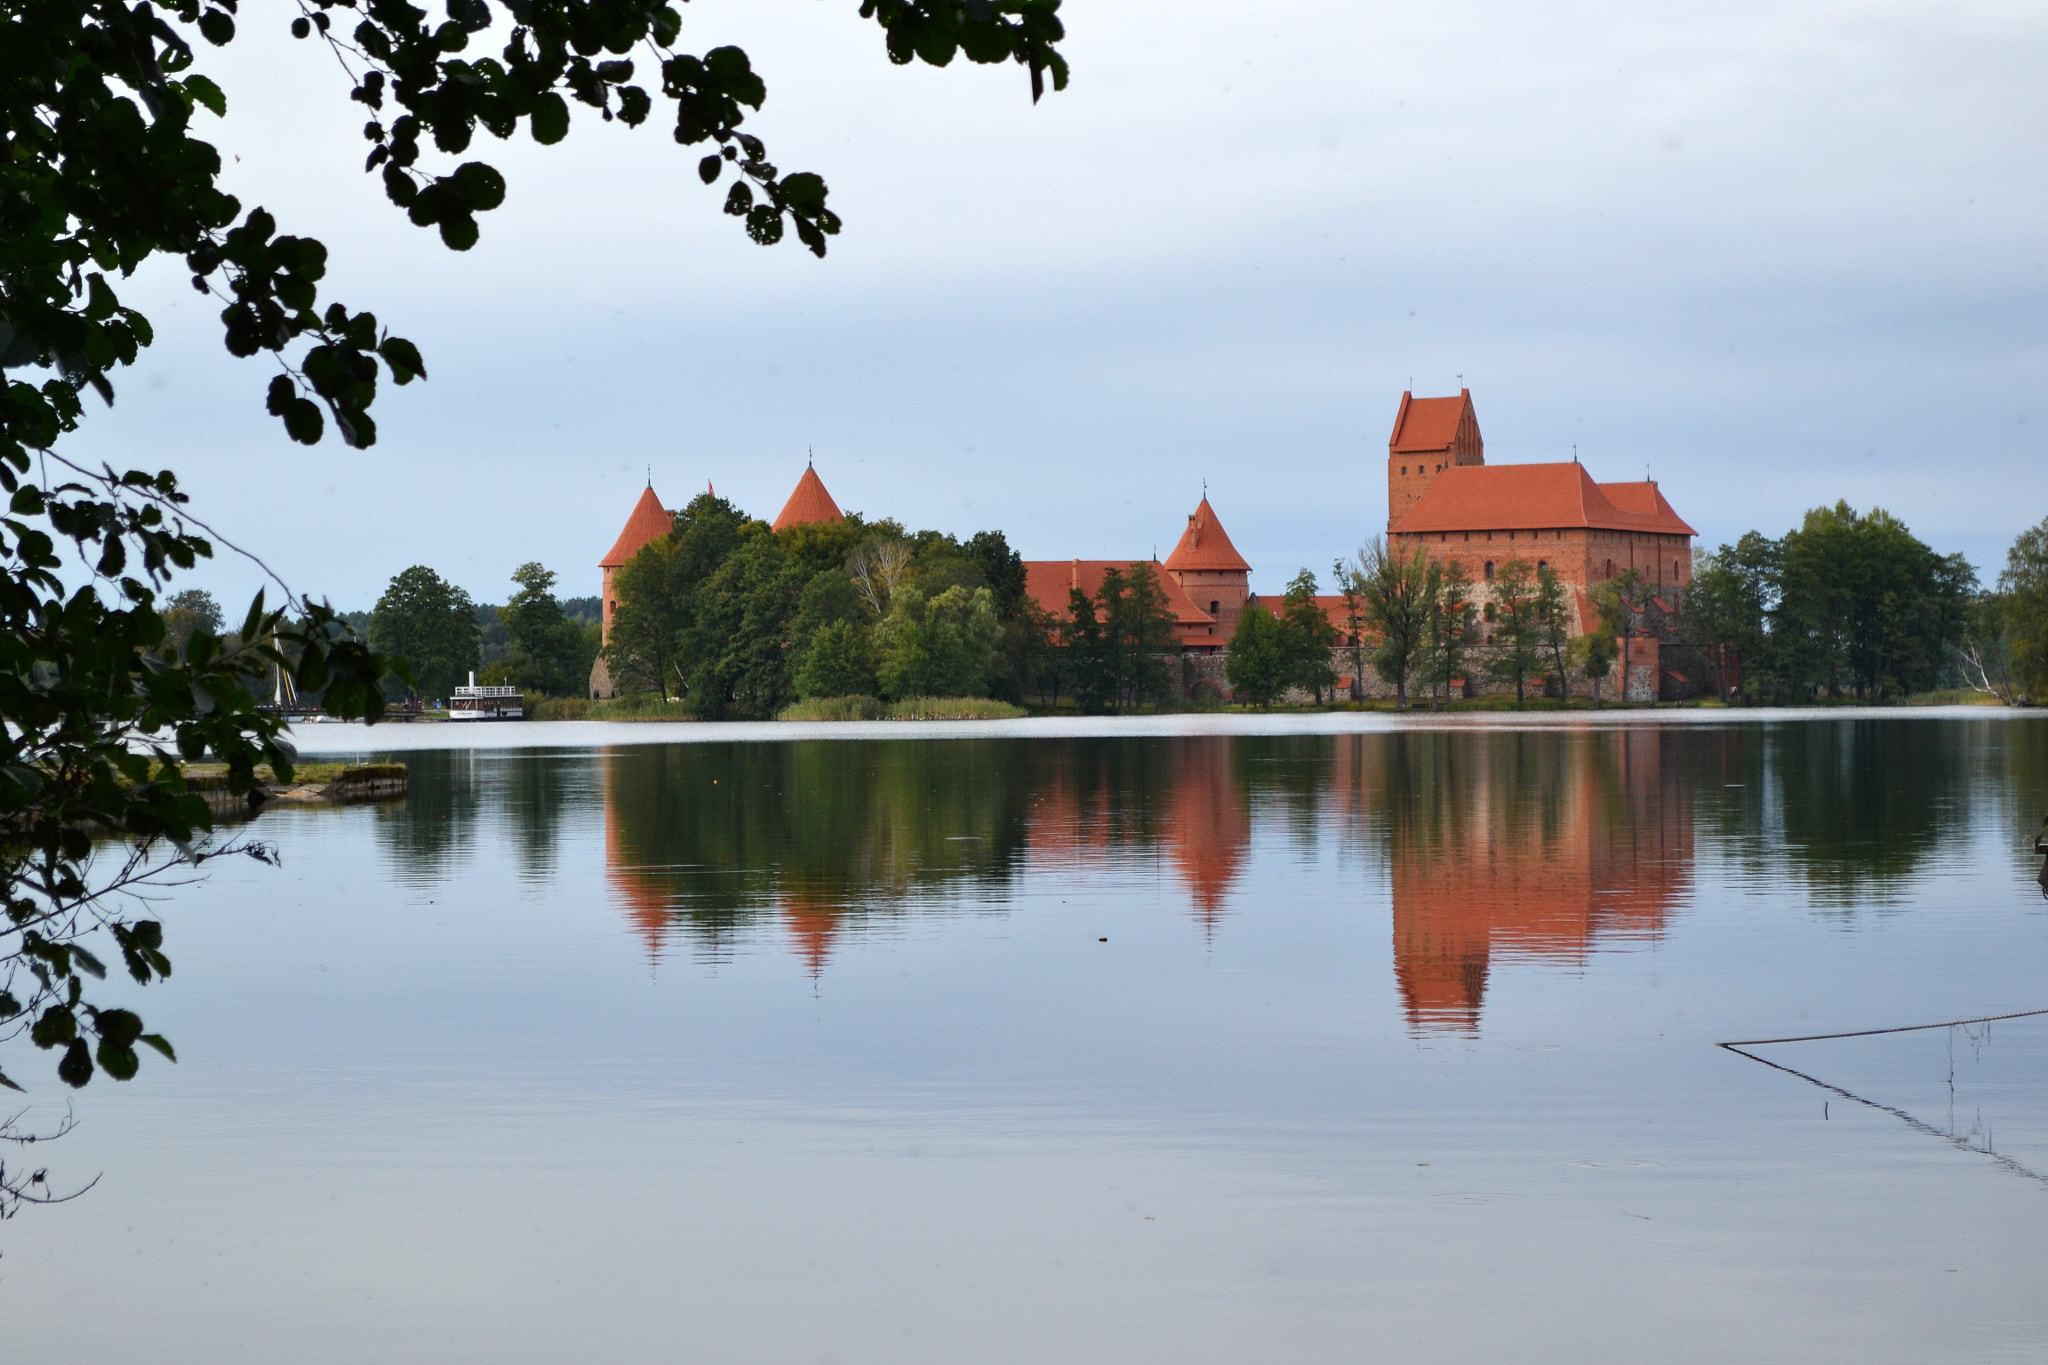 Photograph Trakai castle by Andrey Serenko on 500px